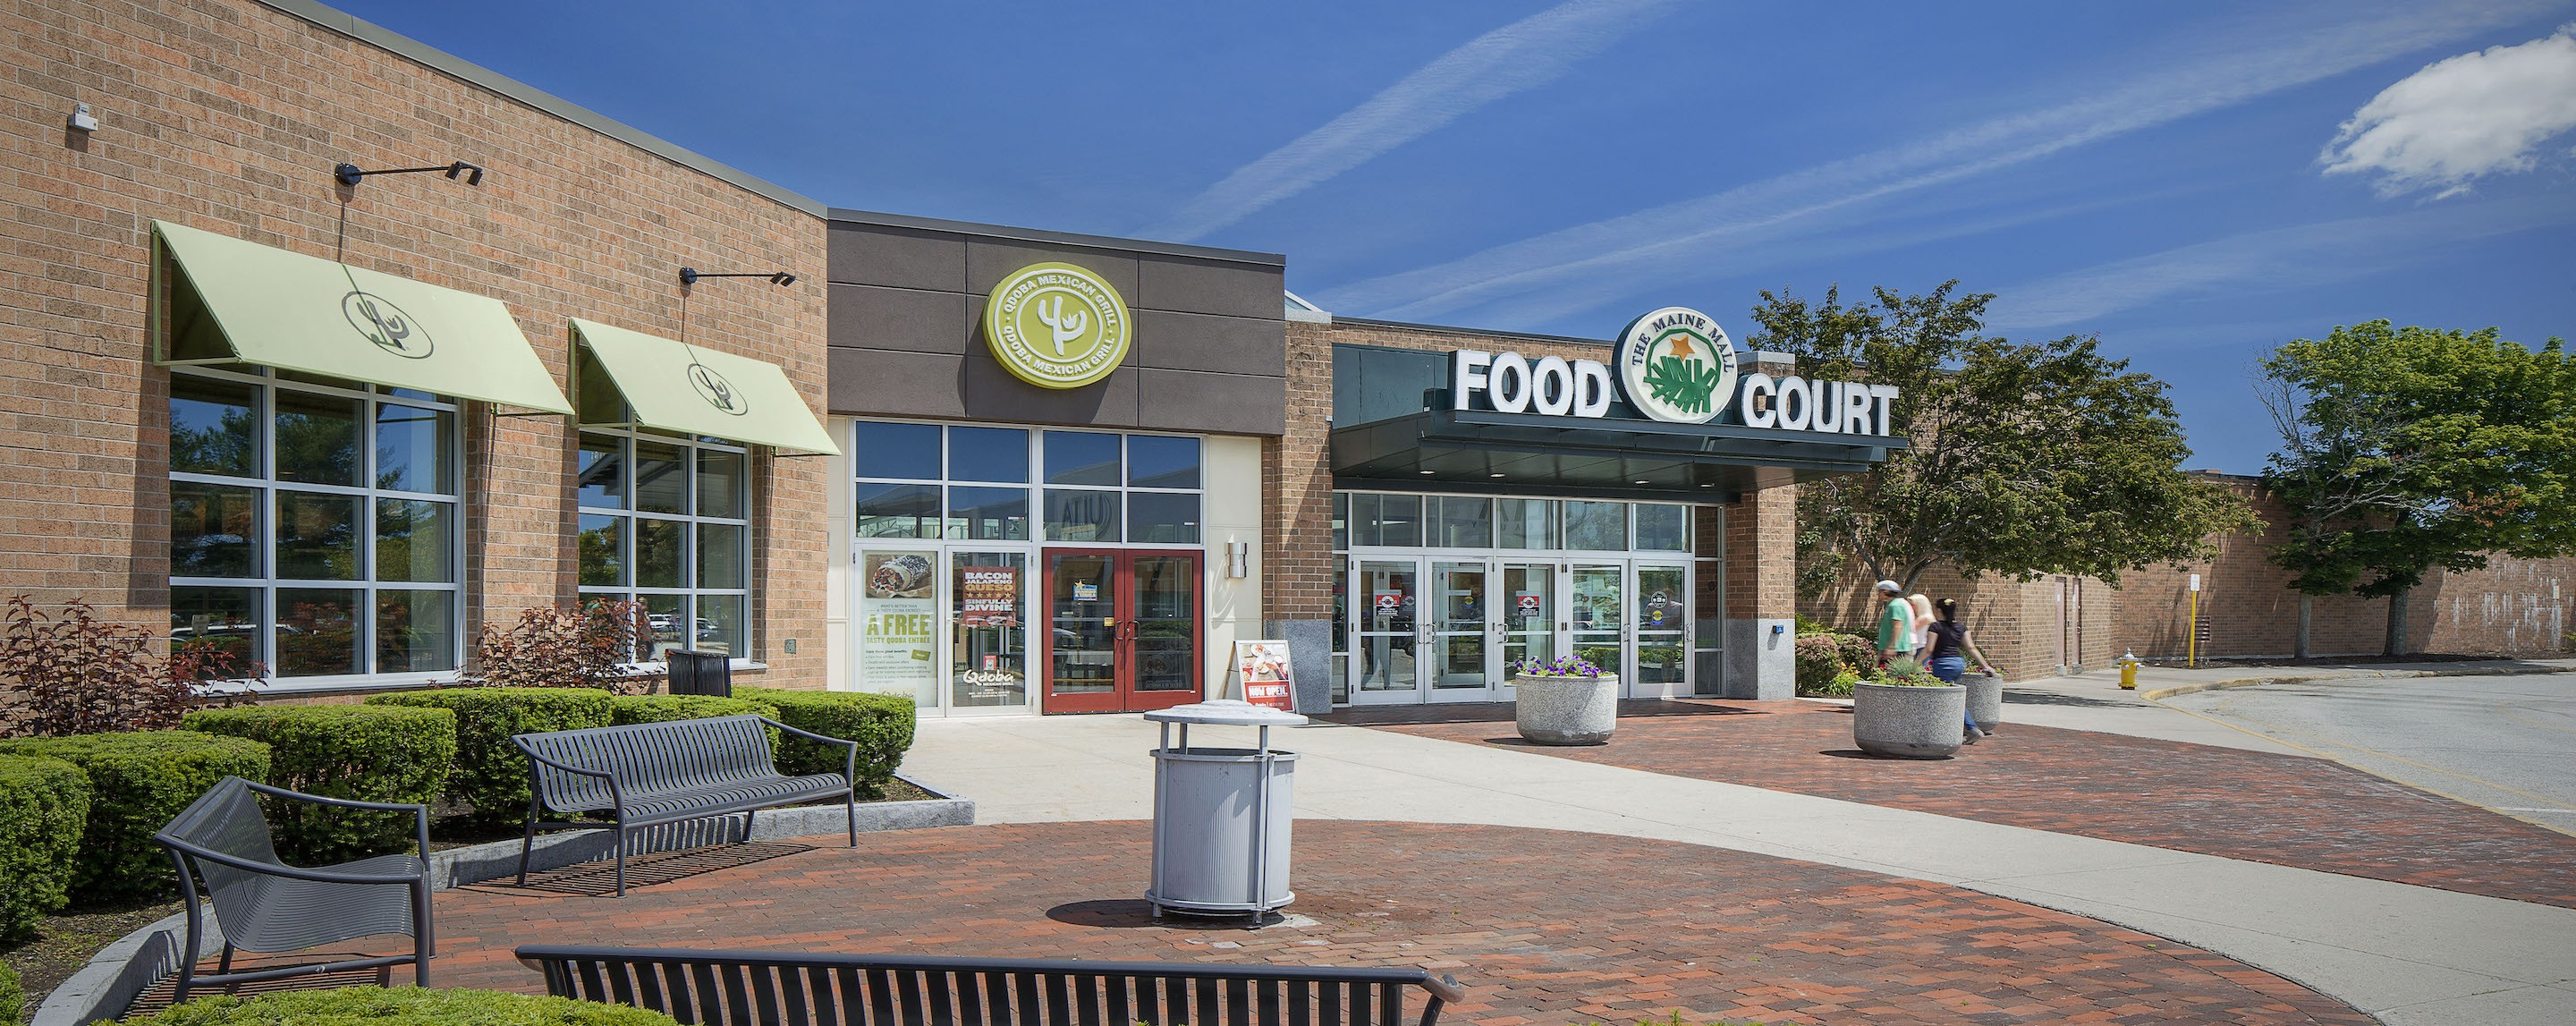 "An exterior shot of a mall in daylight. A large sign above a set of doors reads ""Food Court"""